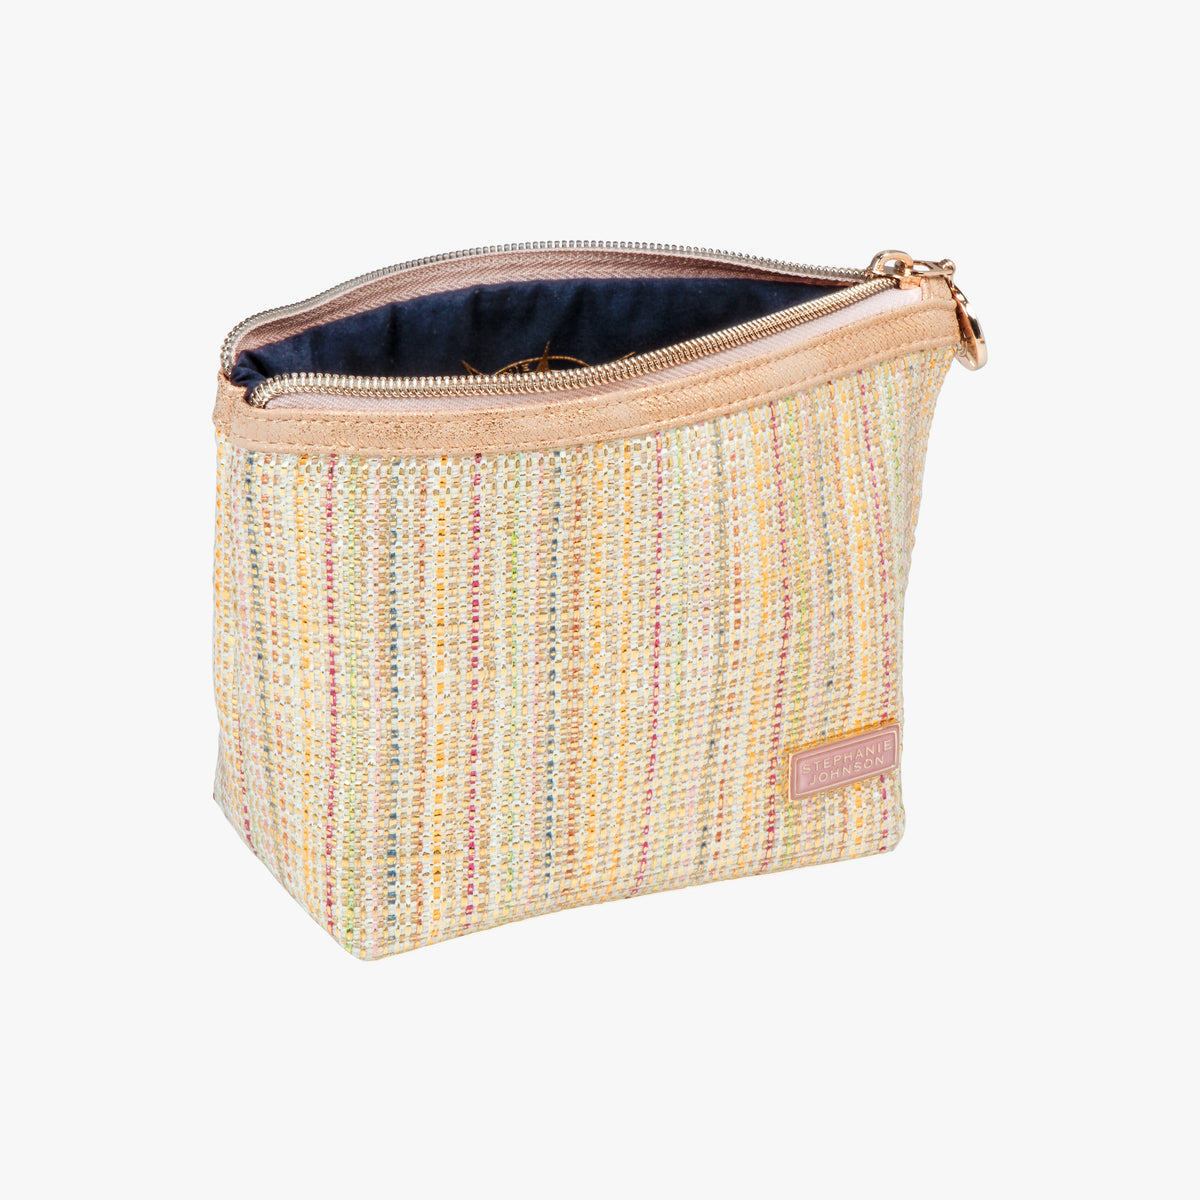 9be11dfea2b327 ... Laura Small Trapezoid Bag Laura Small Trapezoid Bag in Jakarta - Gold  Opened View in in ...